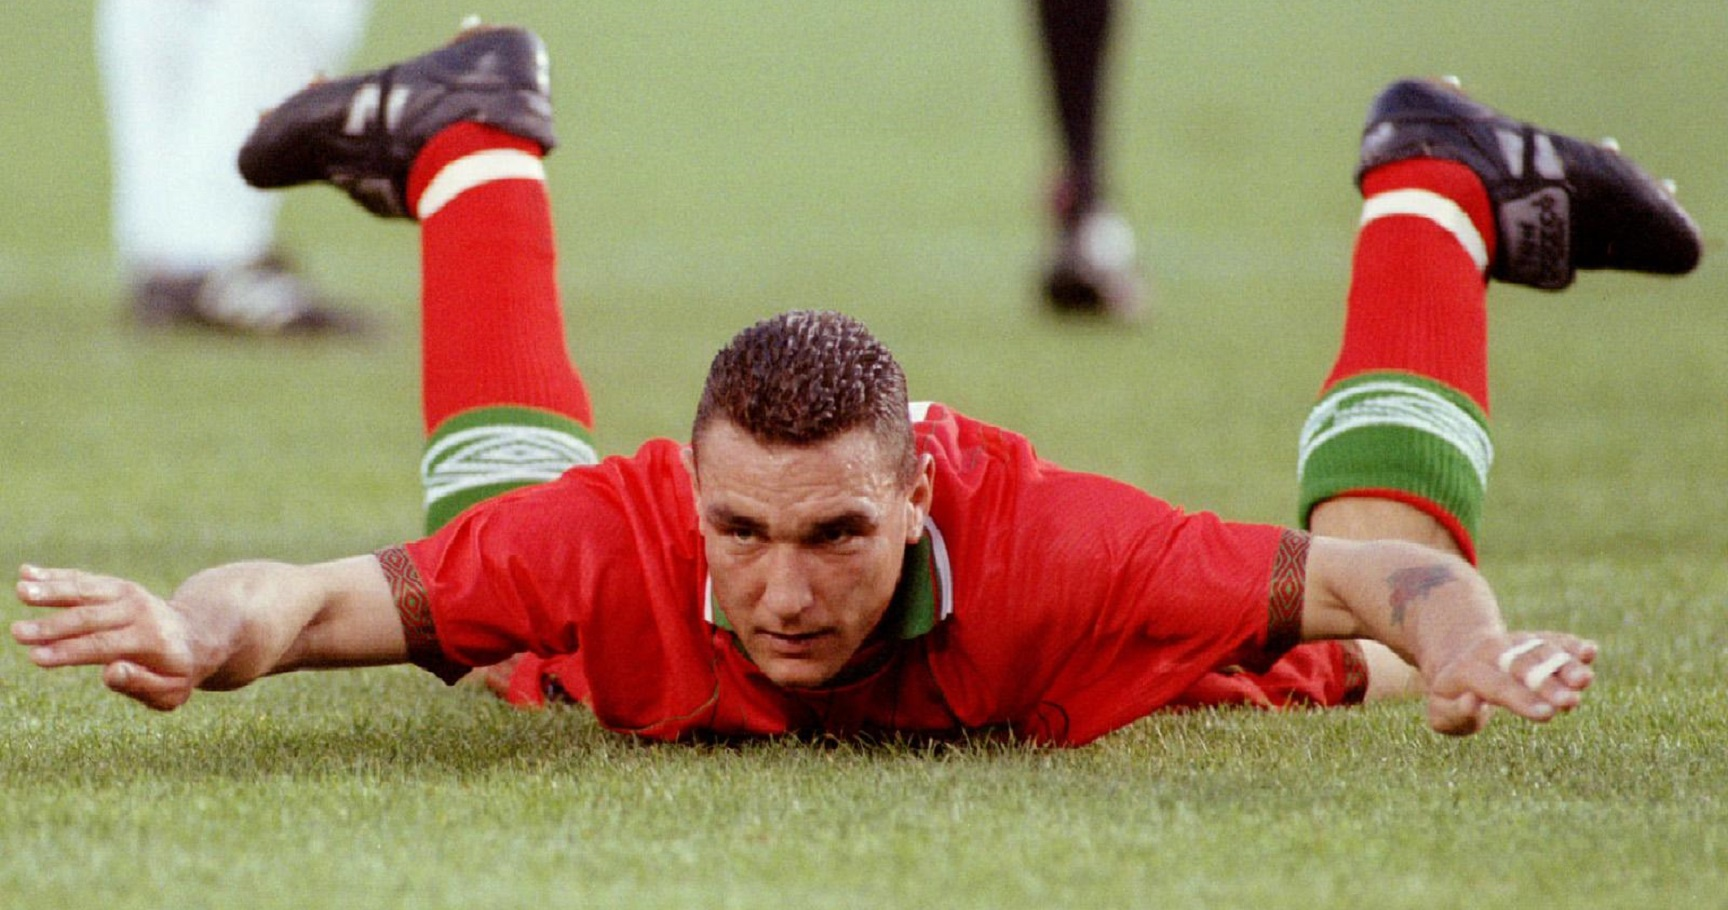 Soccer Players: Top 15 Toughest Soccer Players Of All Time